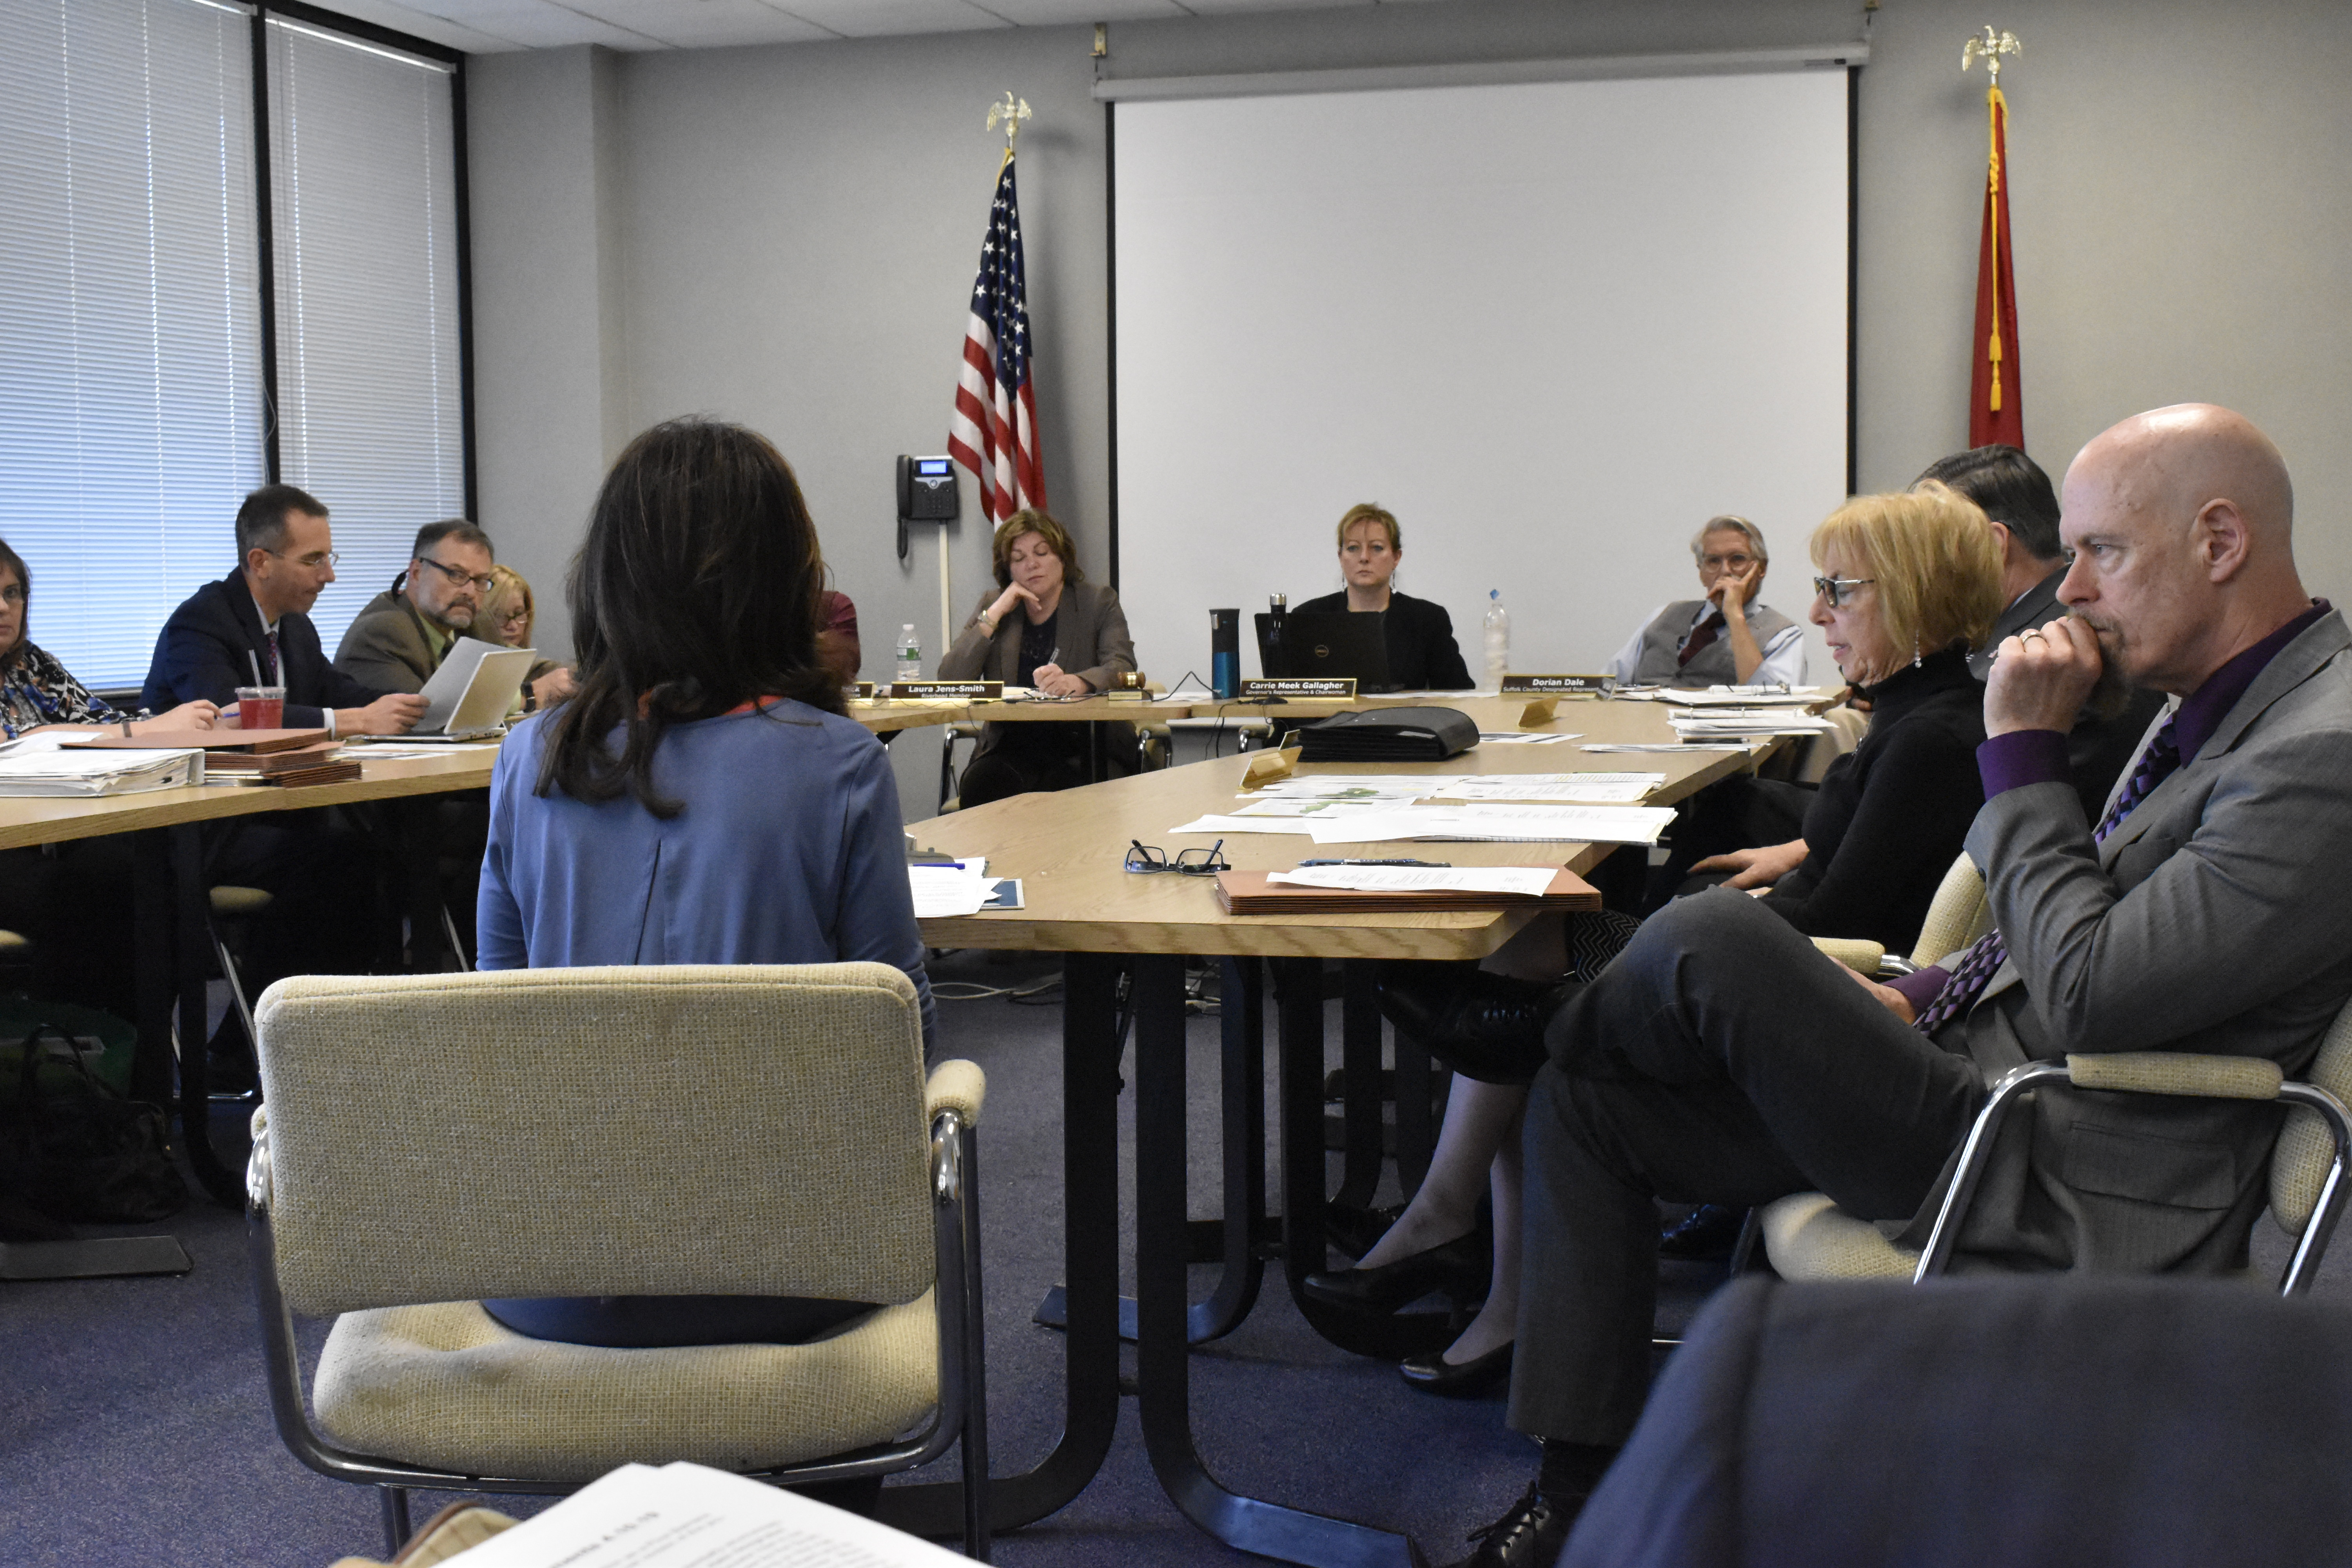 Members and staff of the Central Pine Barrens Commission at a recent meeting. PRESS FILE